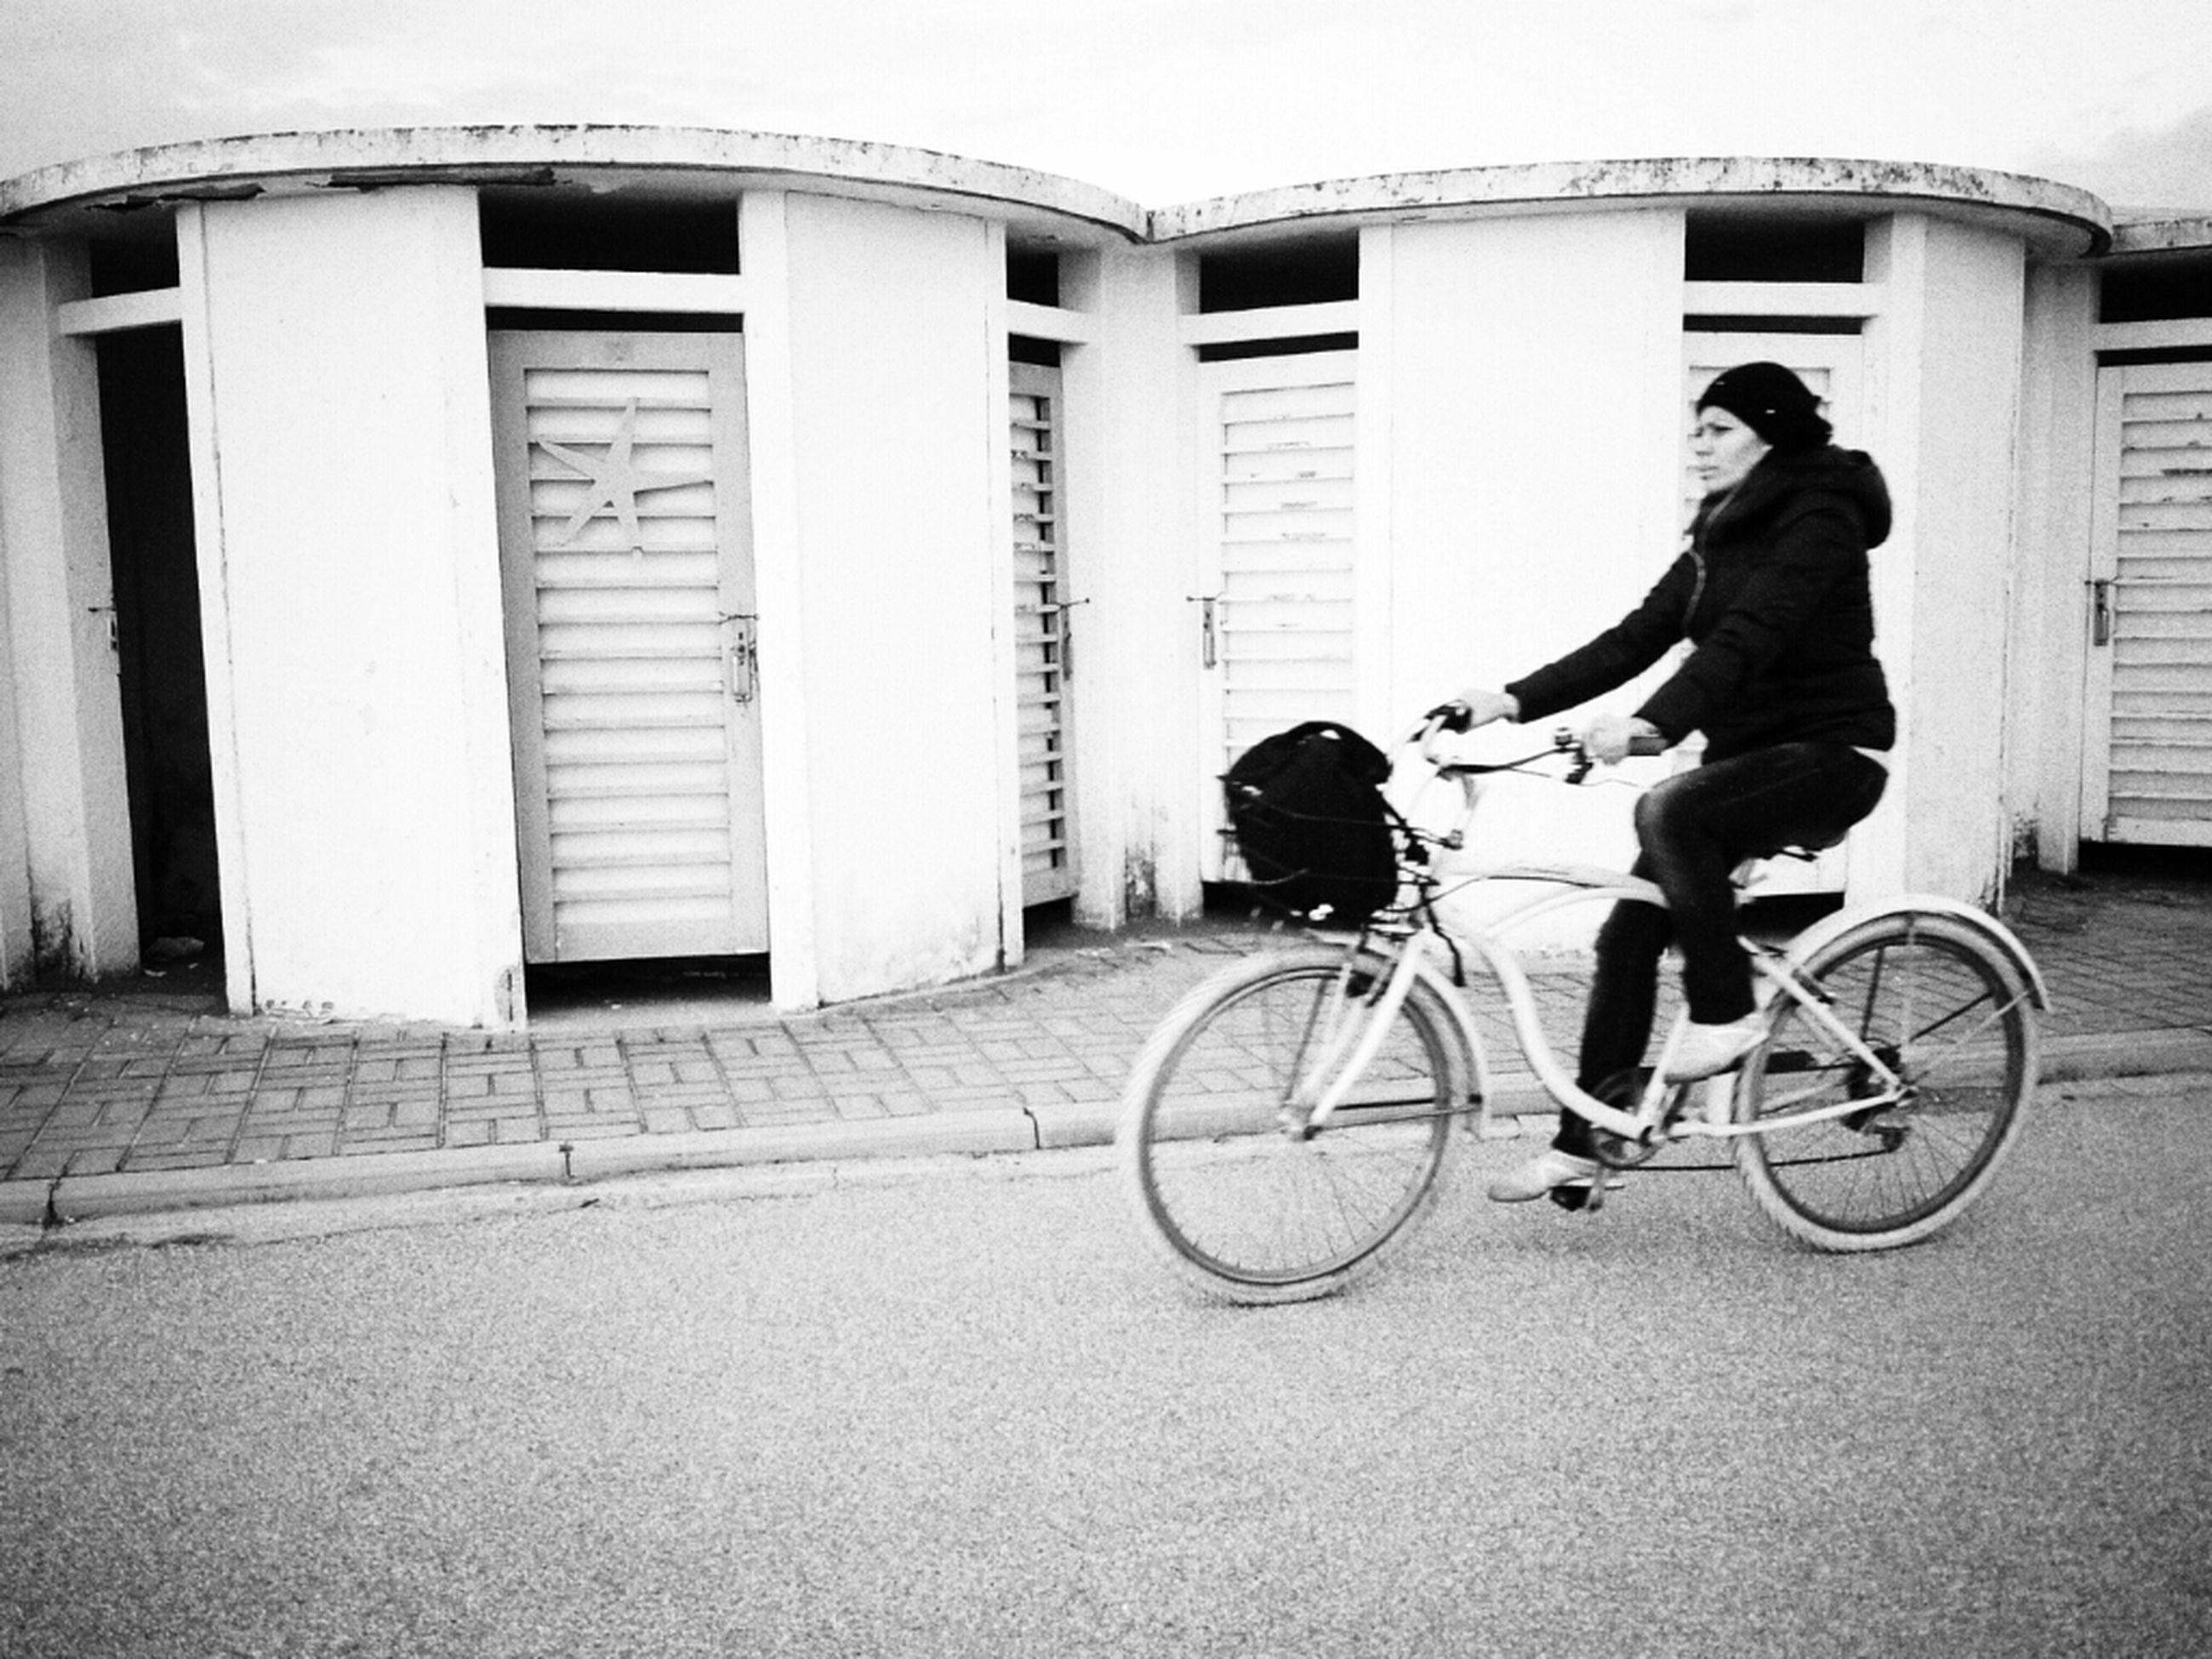 bicycle, building exterior, architecture, transportation, built structure, mode of transport, land vehicle, riding, men, full length, lifestyles, street, side view, cycling, stationary, city, parked, leisure activity